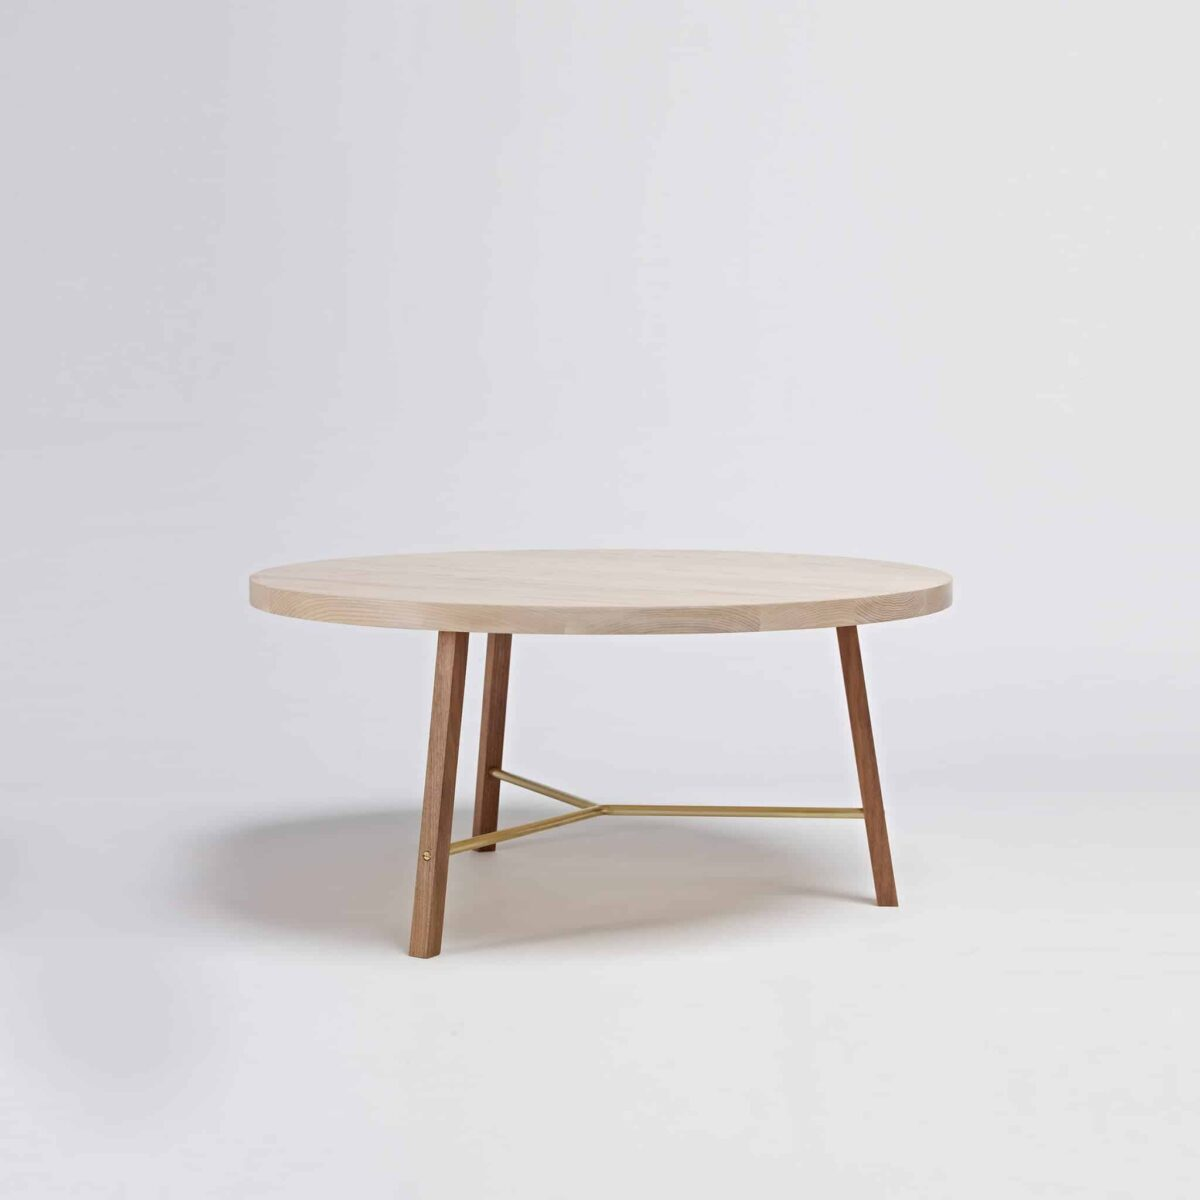 series-two-coffee-table-round-another-country-002-1.jpg